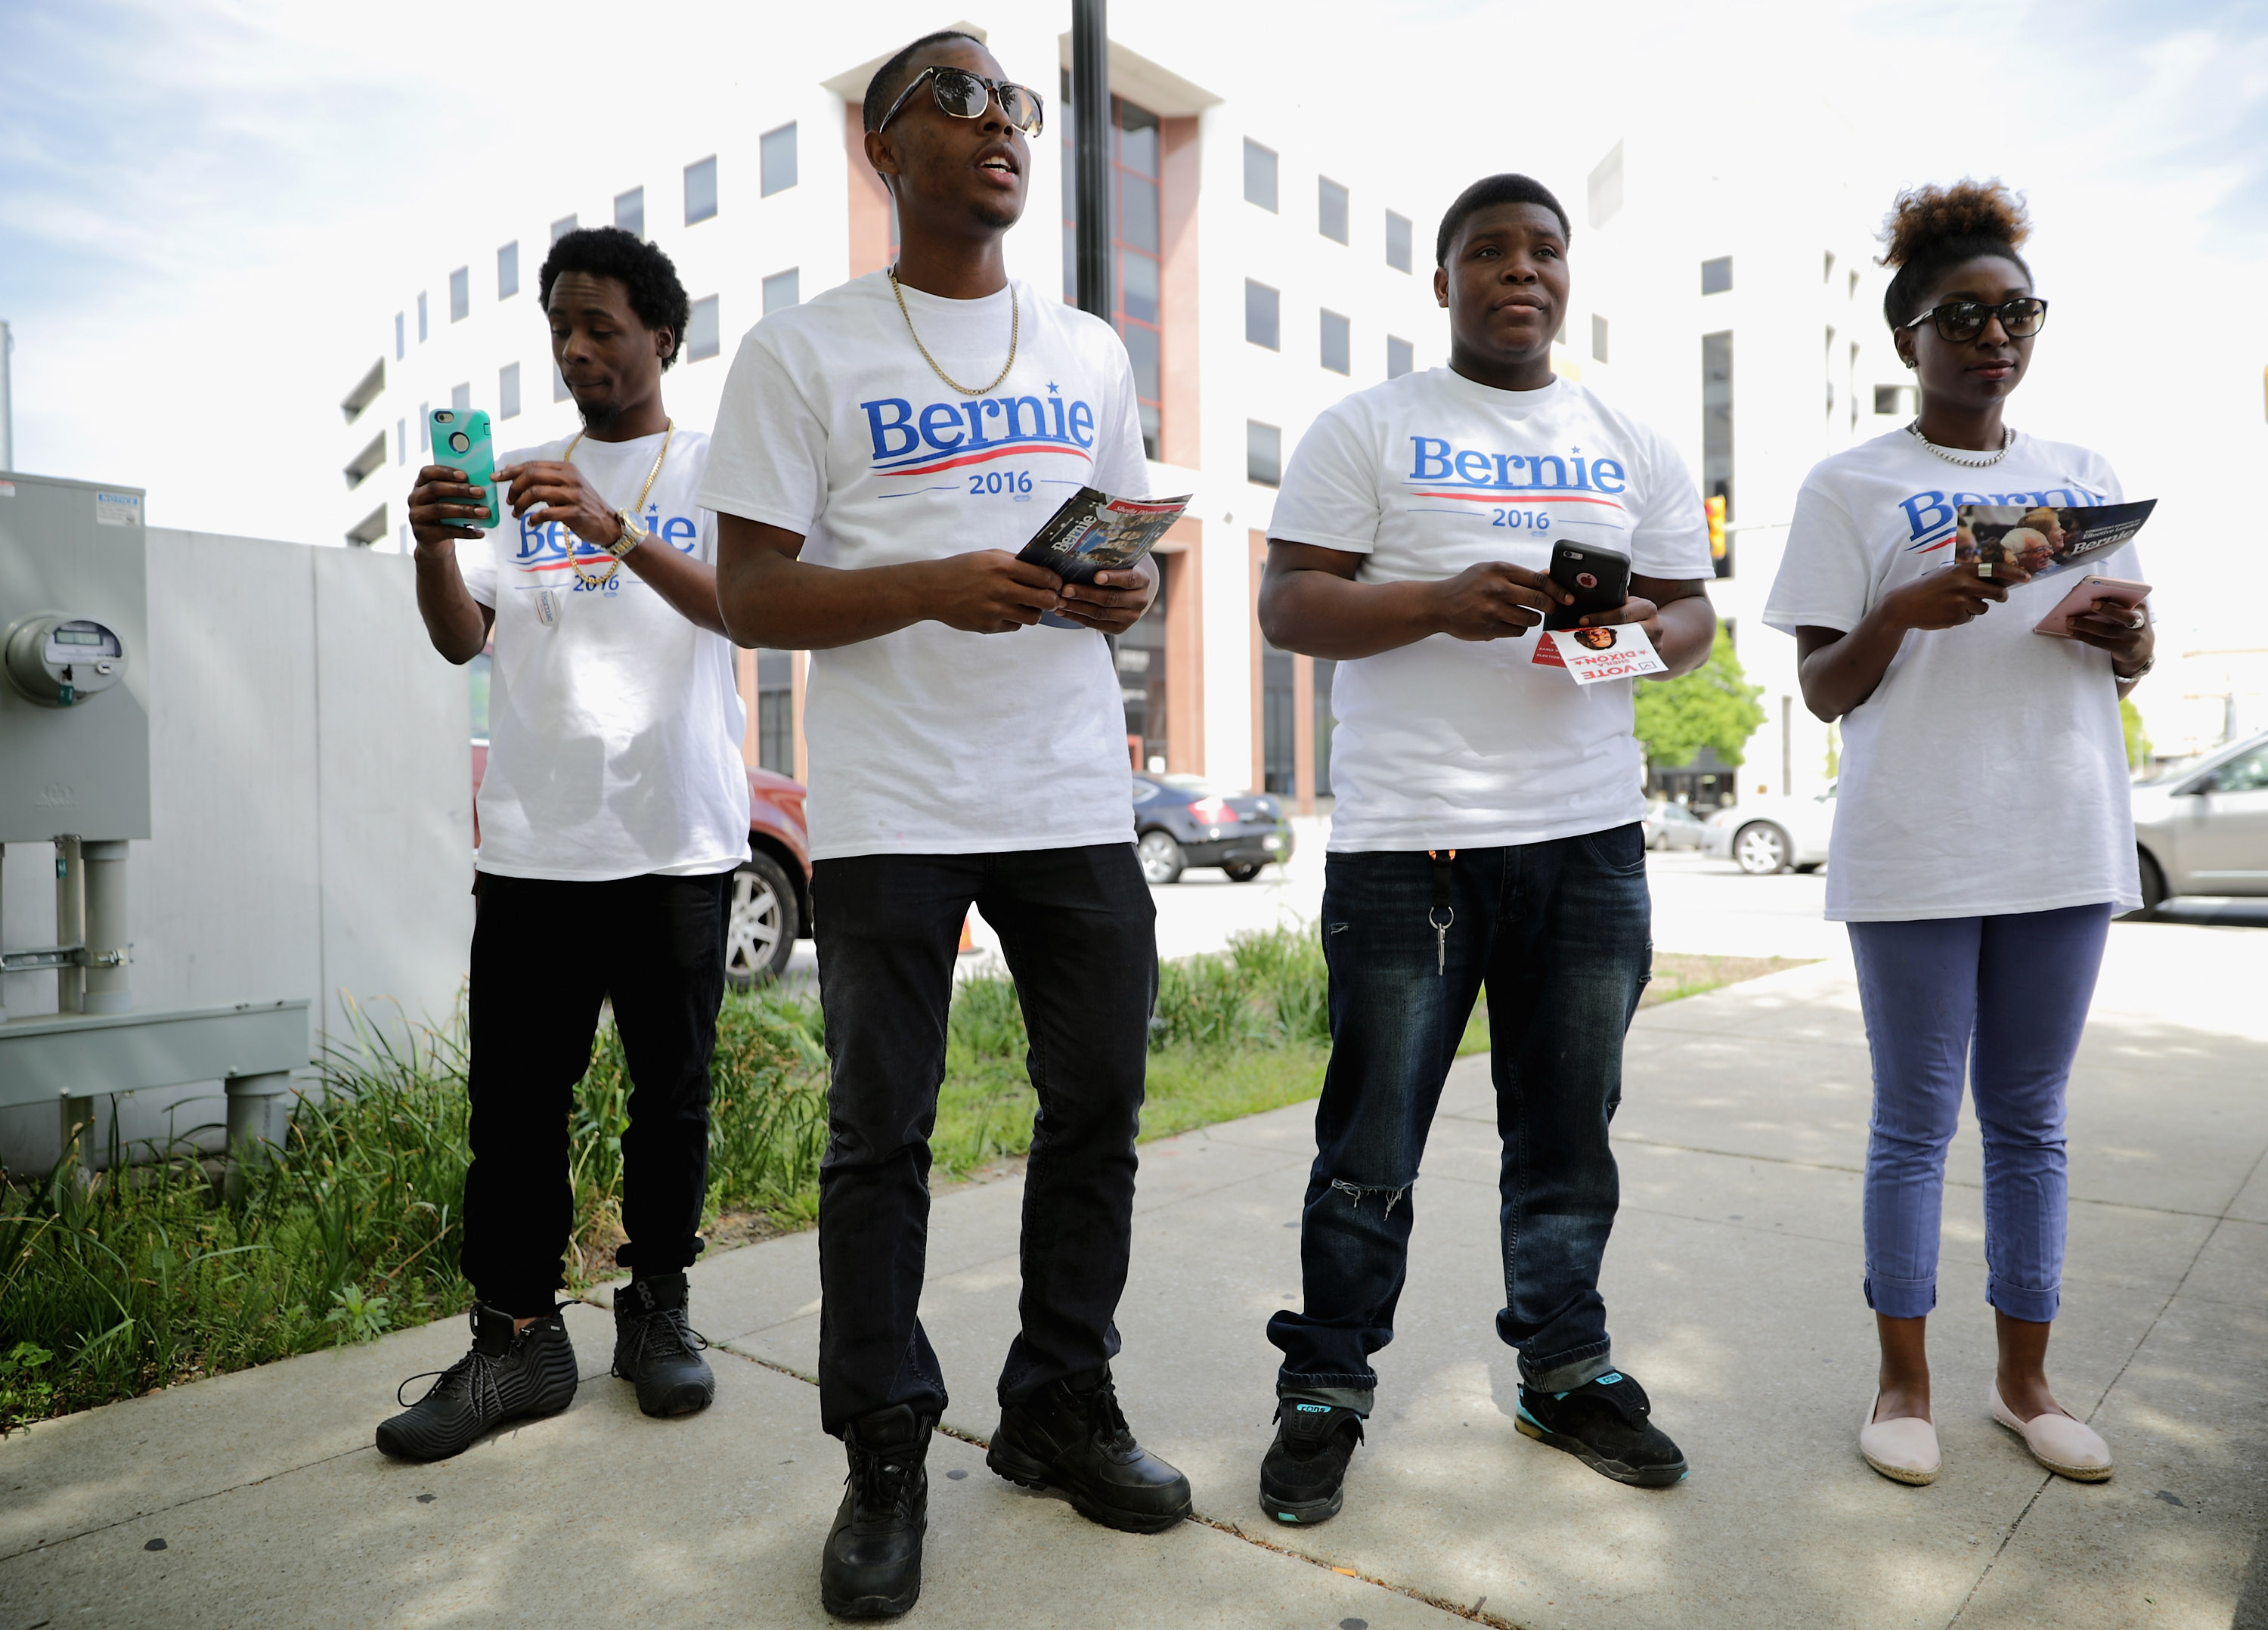 Bernie supporters need people of color if they don't want their movement to bust